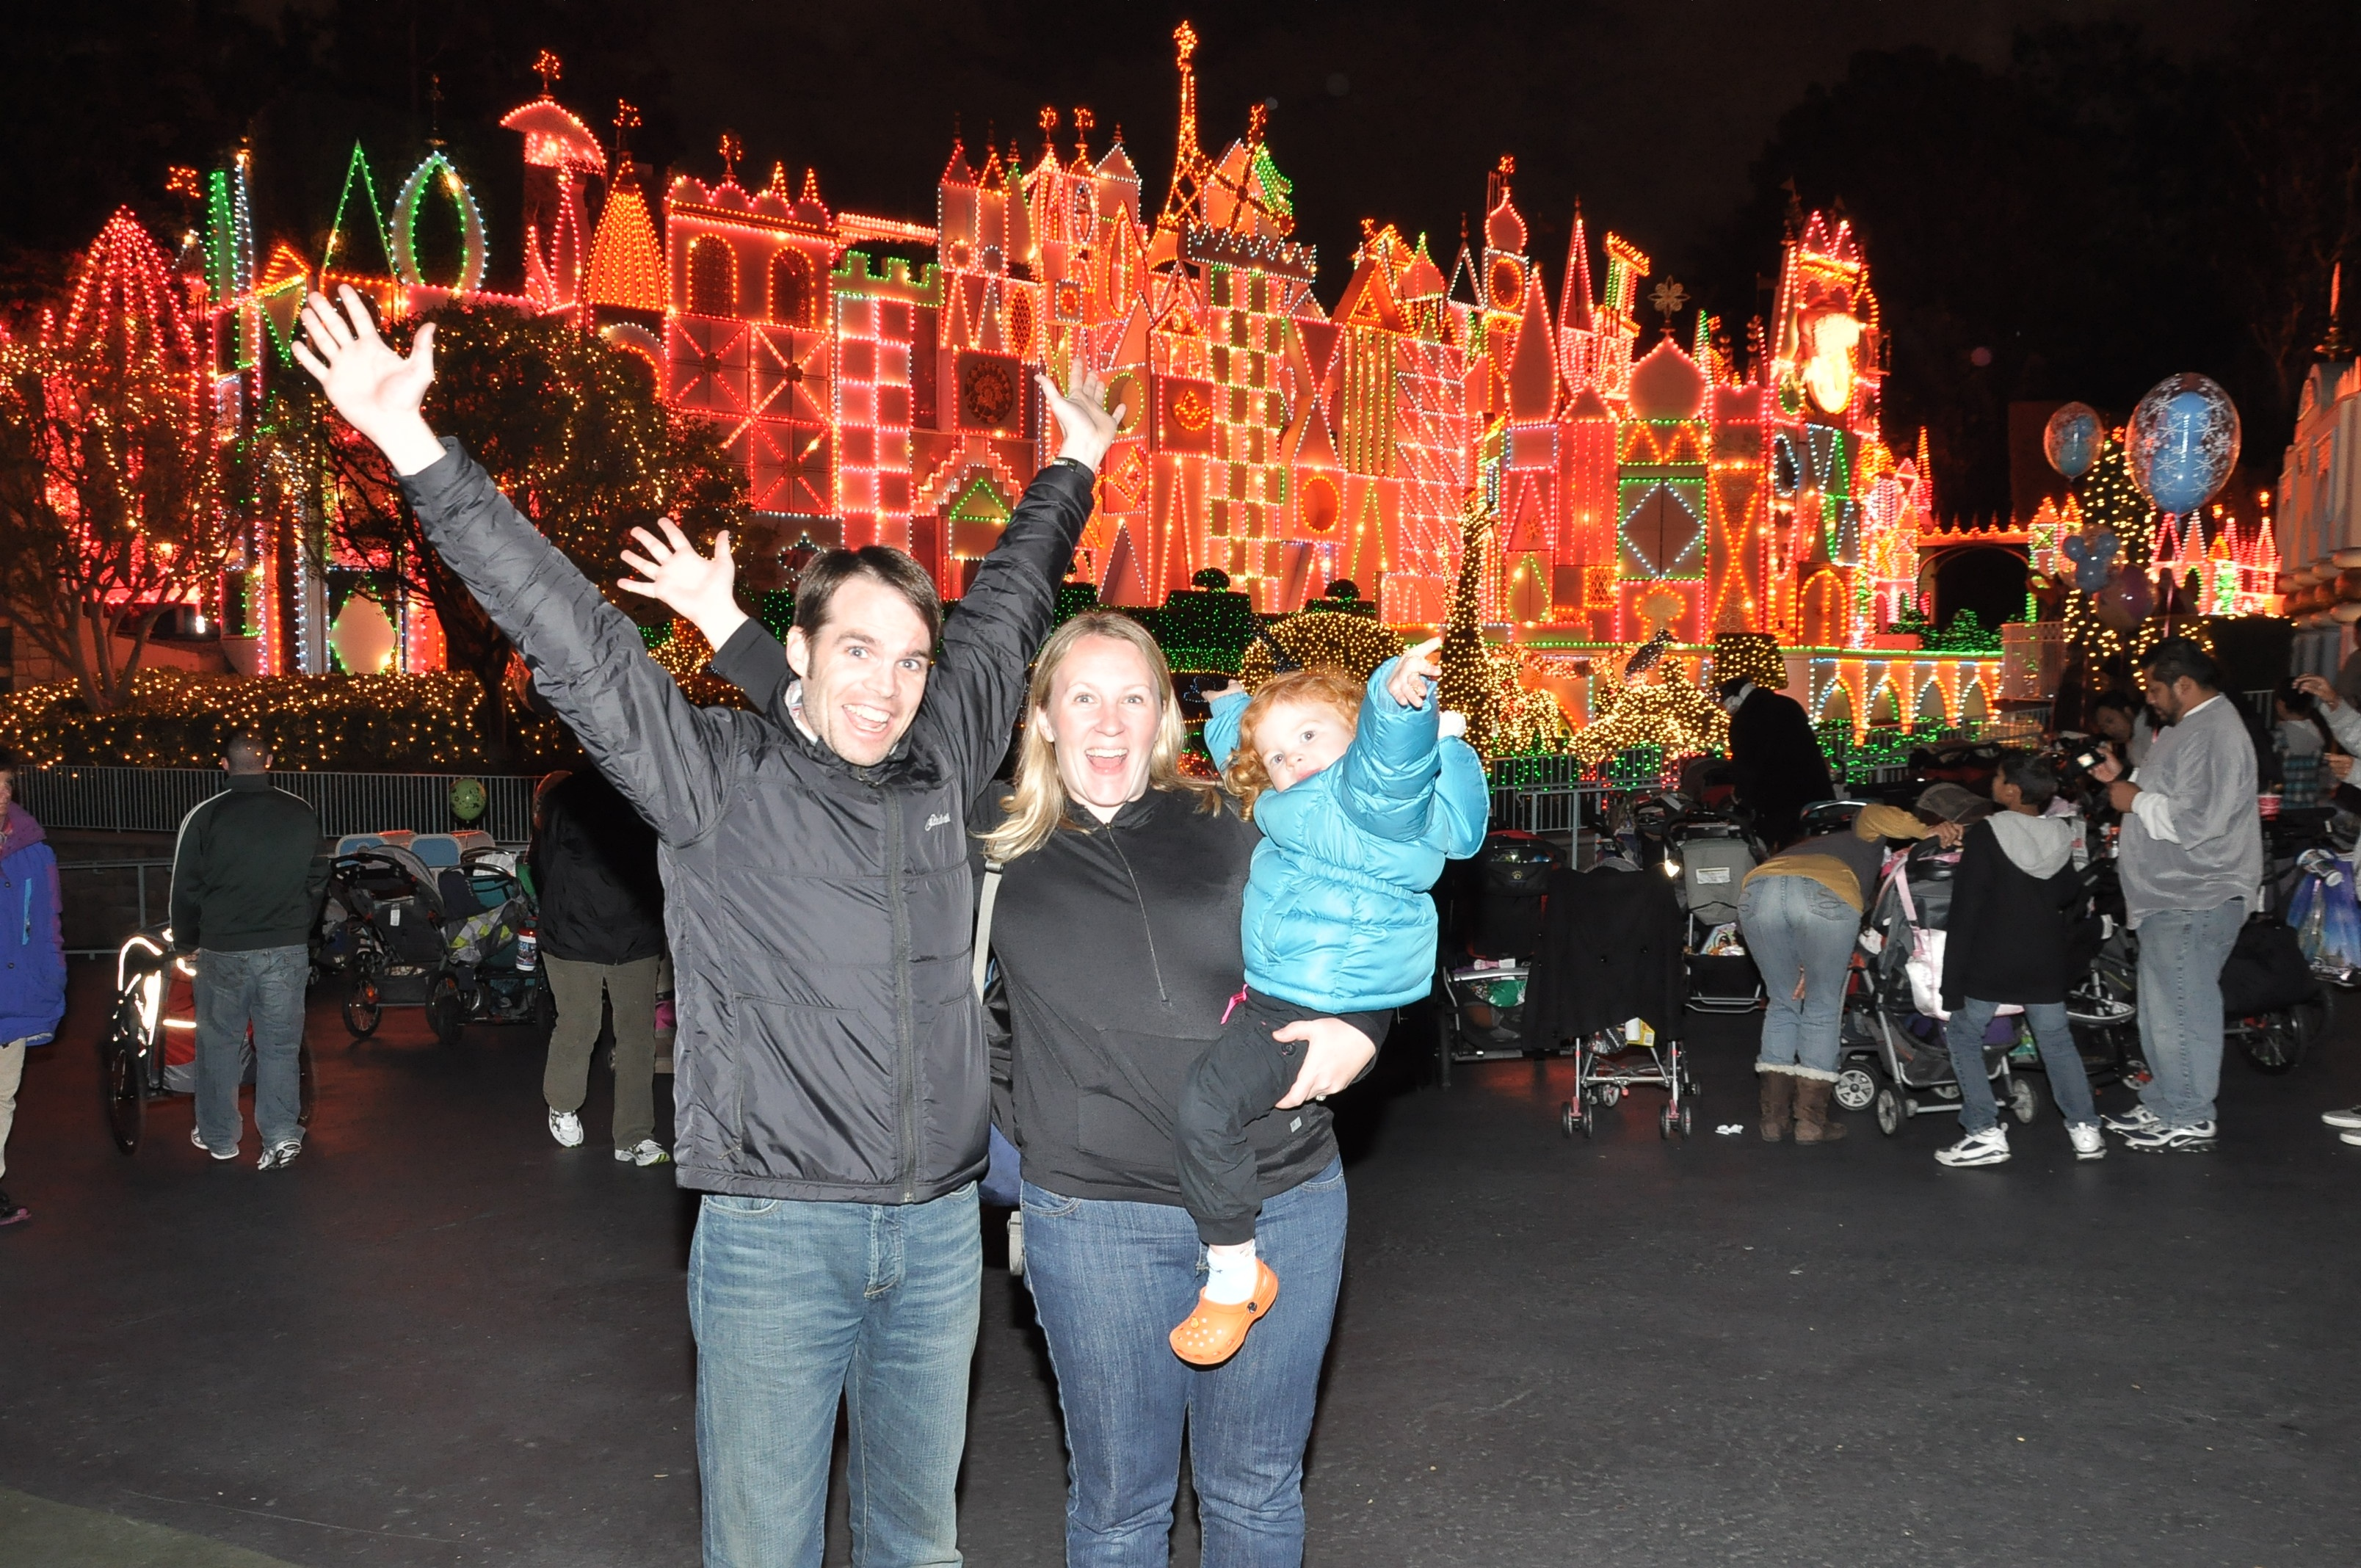 Christmas magic at It's a Small World Holiday.